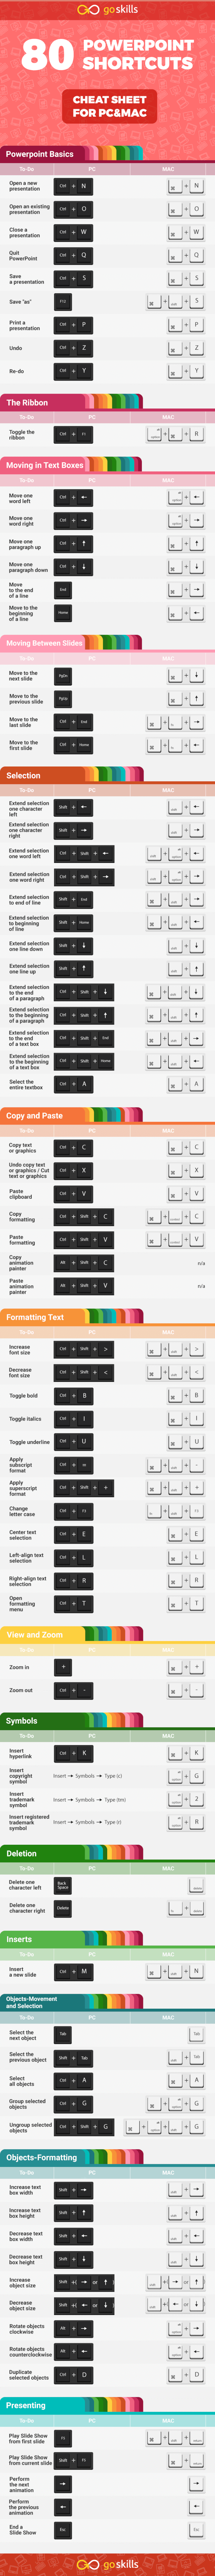 80 Essential PowerPoint Shortcuts Every Professional Should Know